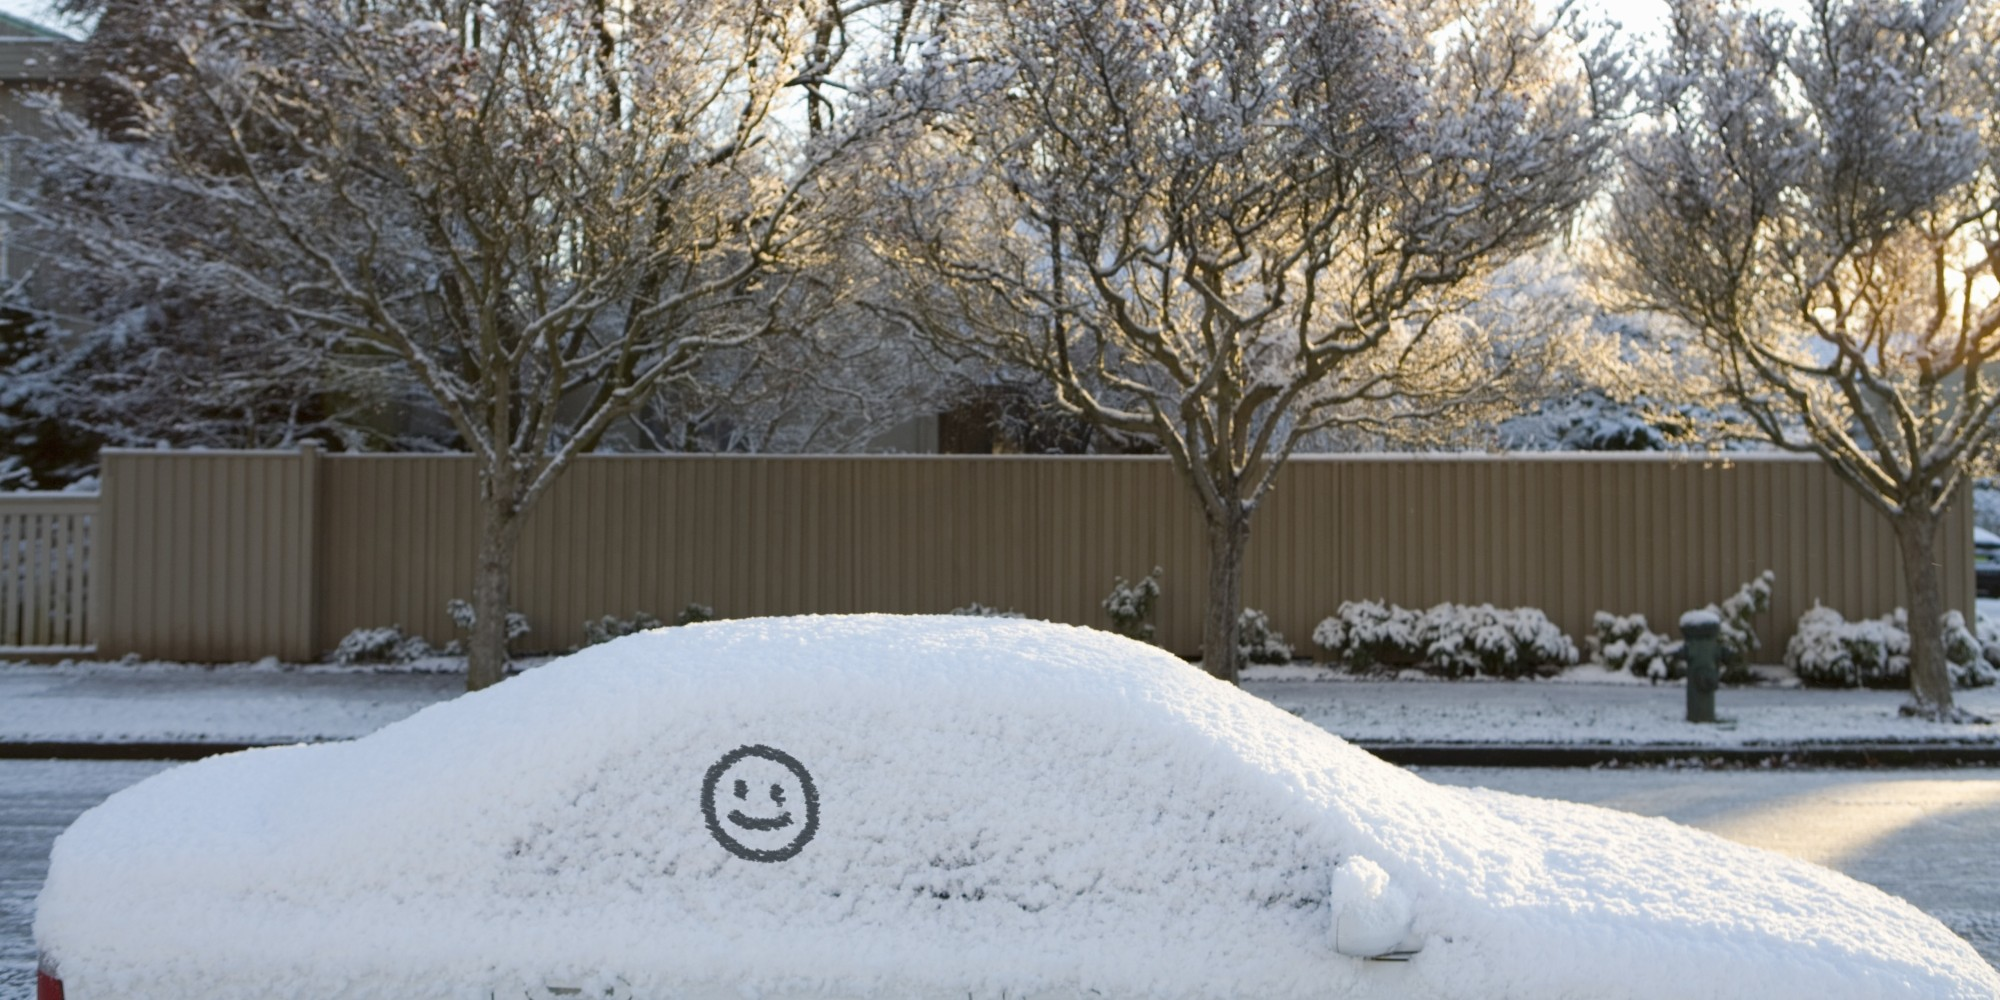 Senate In Balance >> 8 Sweet Snow Messages That Will Warm Your Heart   HuffPost